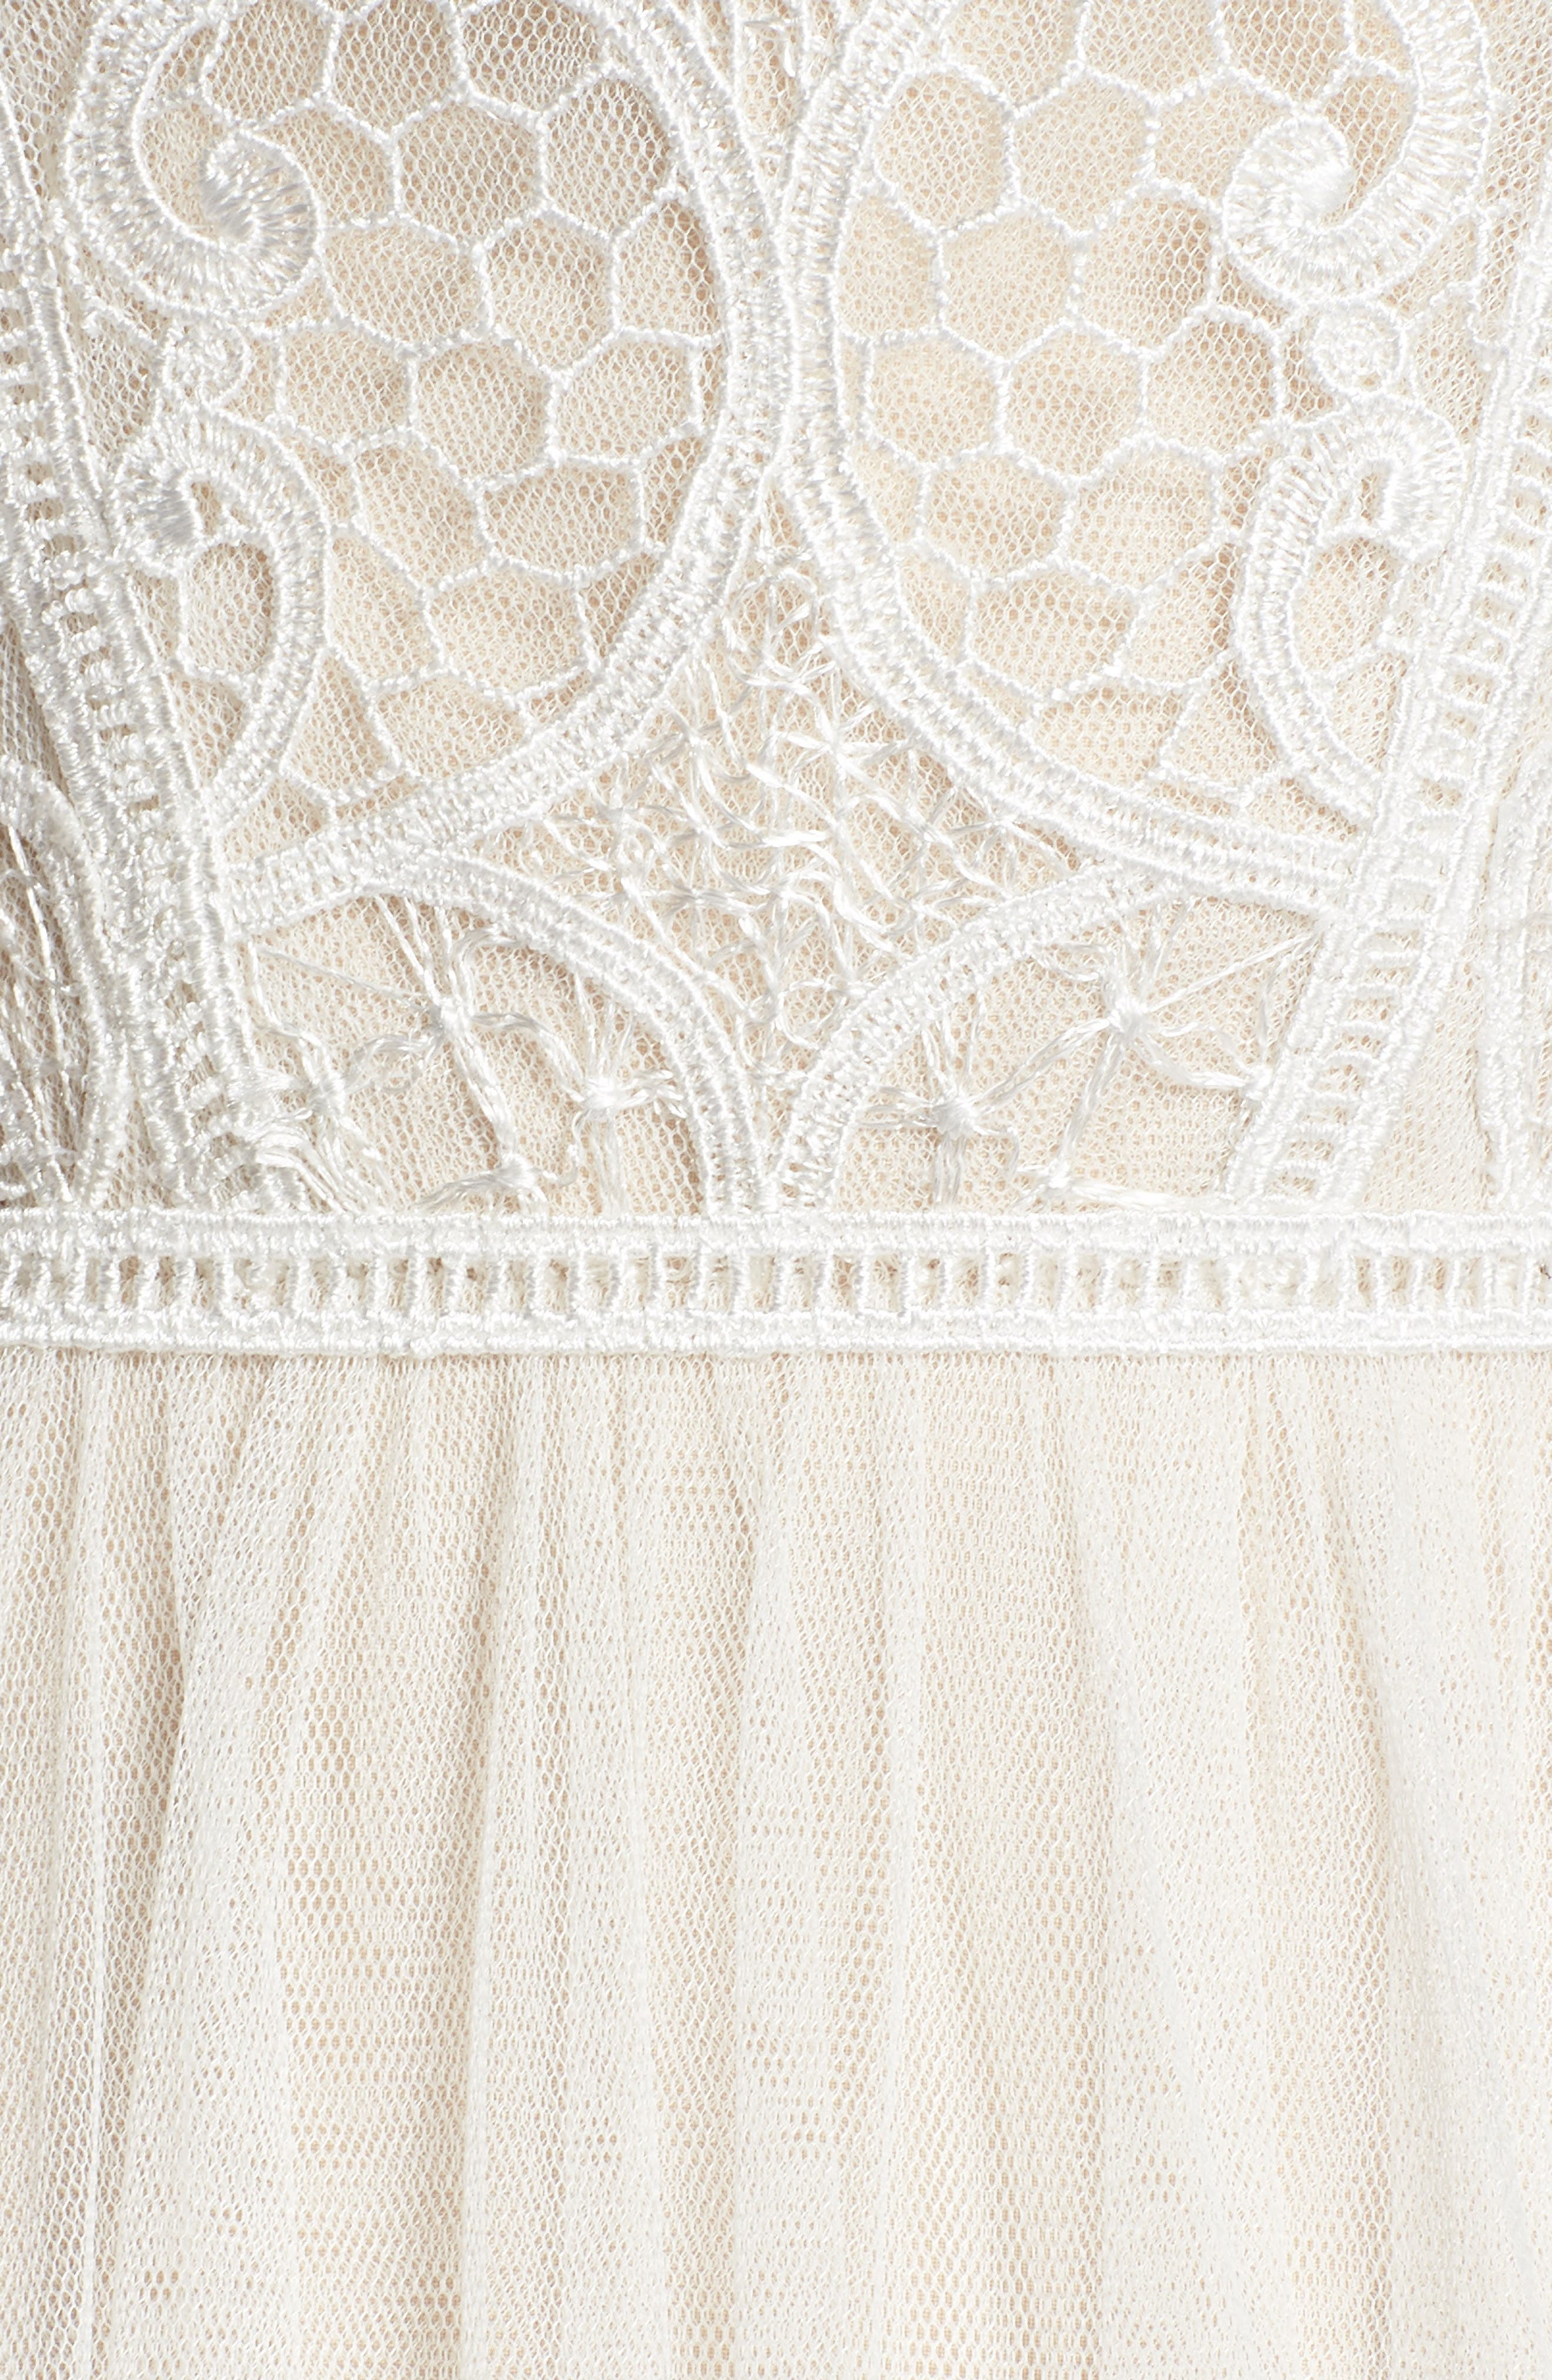 Lace & Tulle A-Line Gown,                             Alternate thumbnail 5, color,                             Ivory/Cashmere